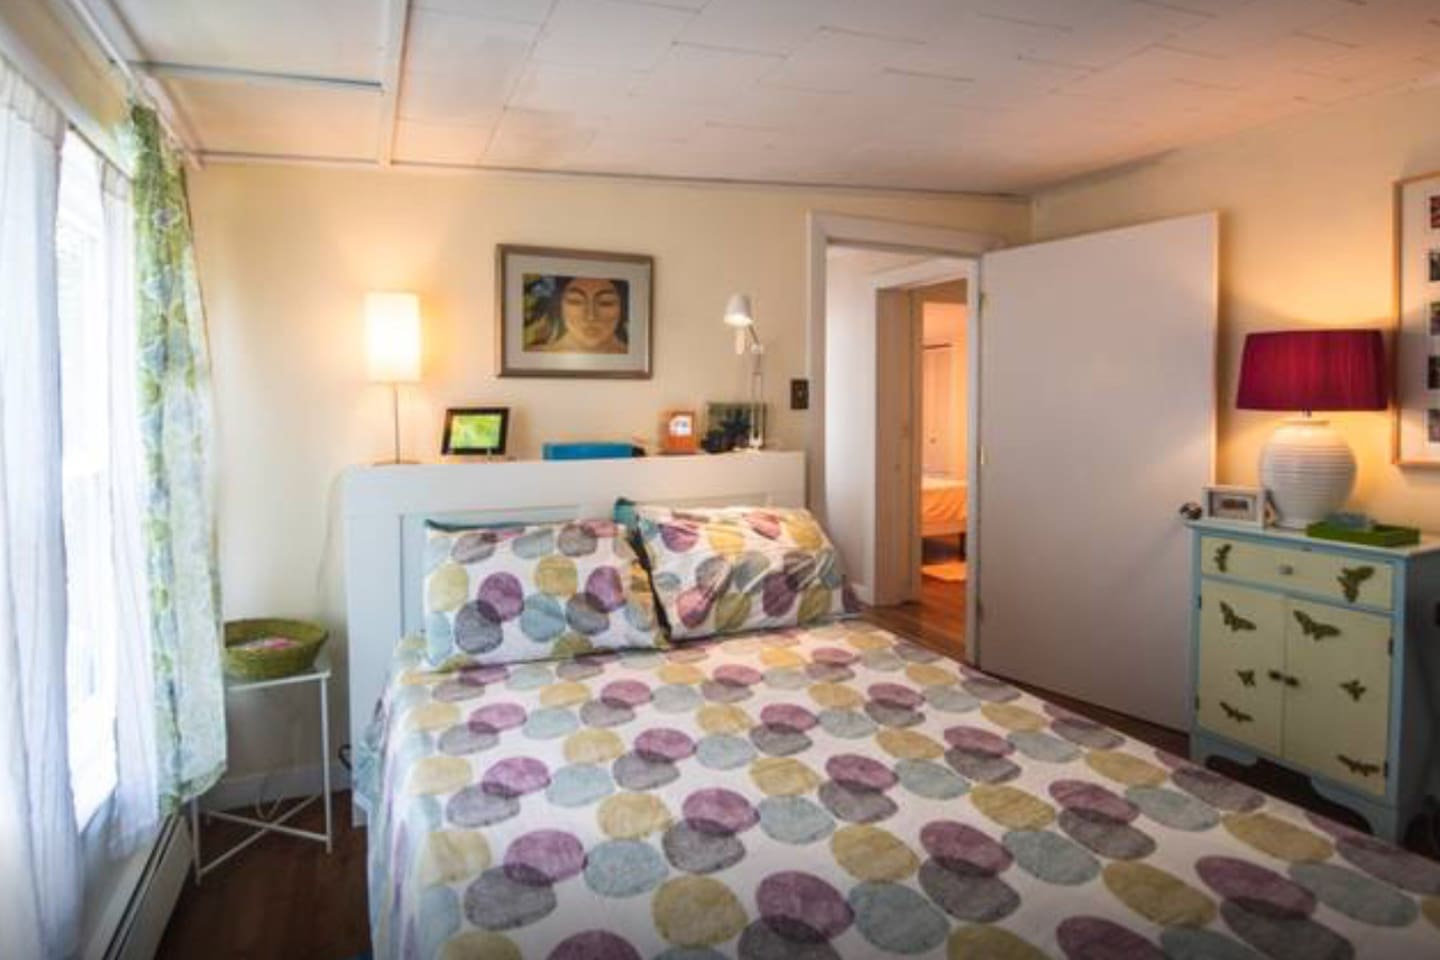 Private bedroom with full size bed, armoire, a/c window unit, two windows and luggage rack .